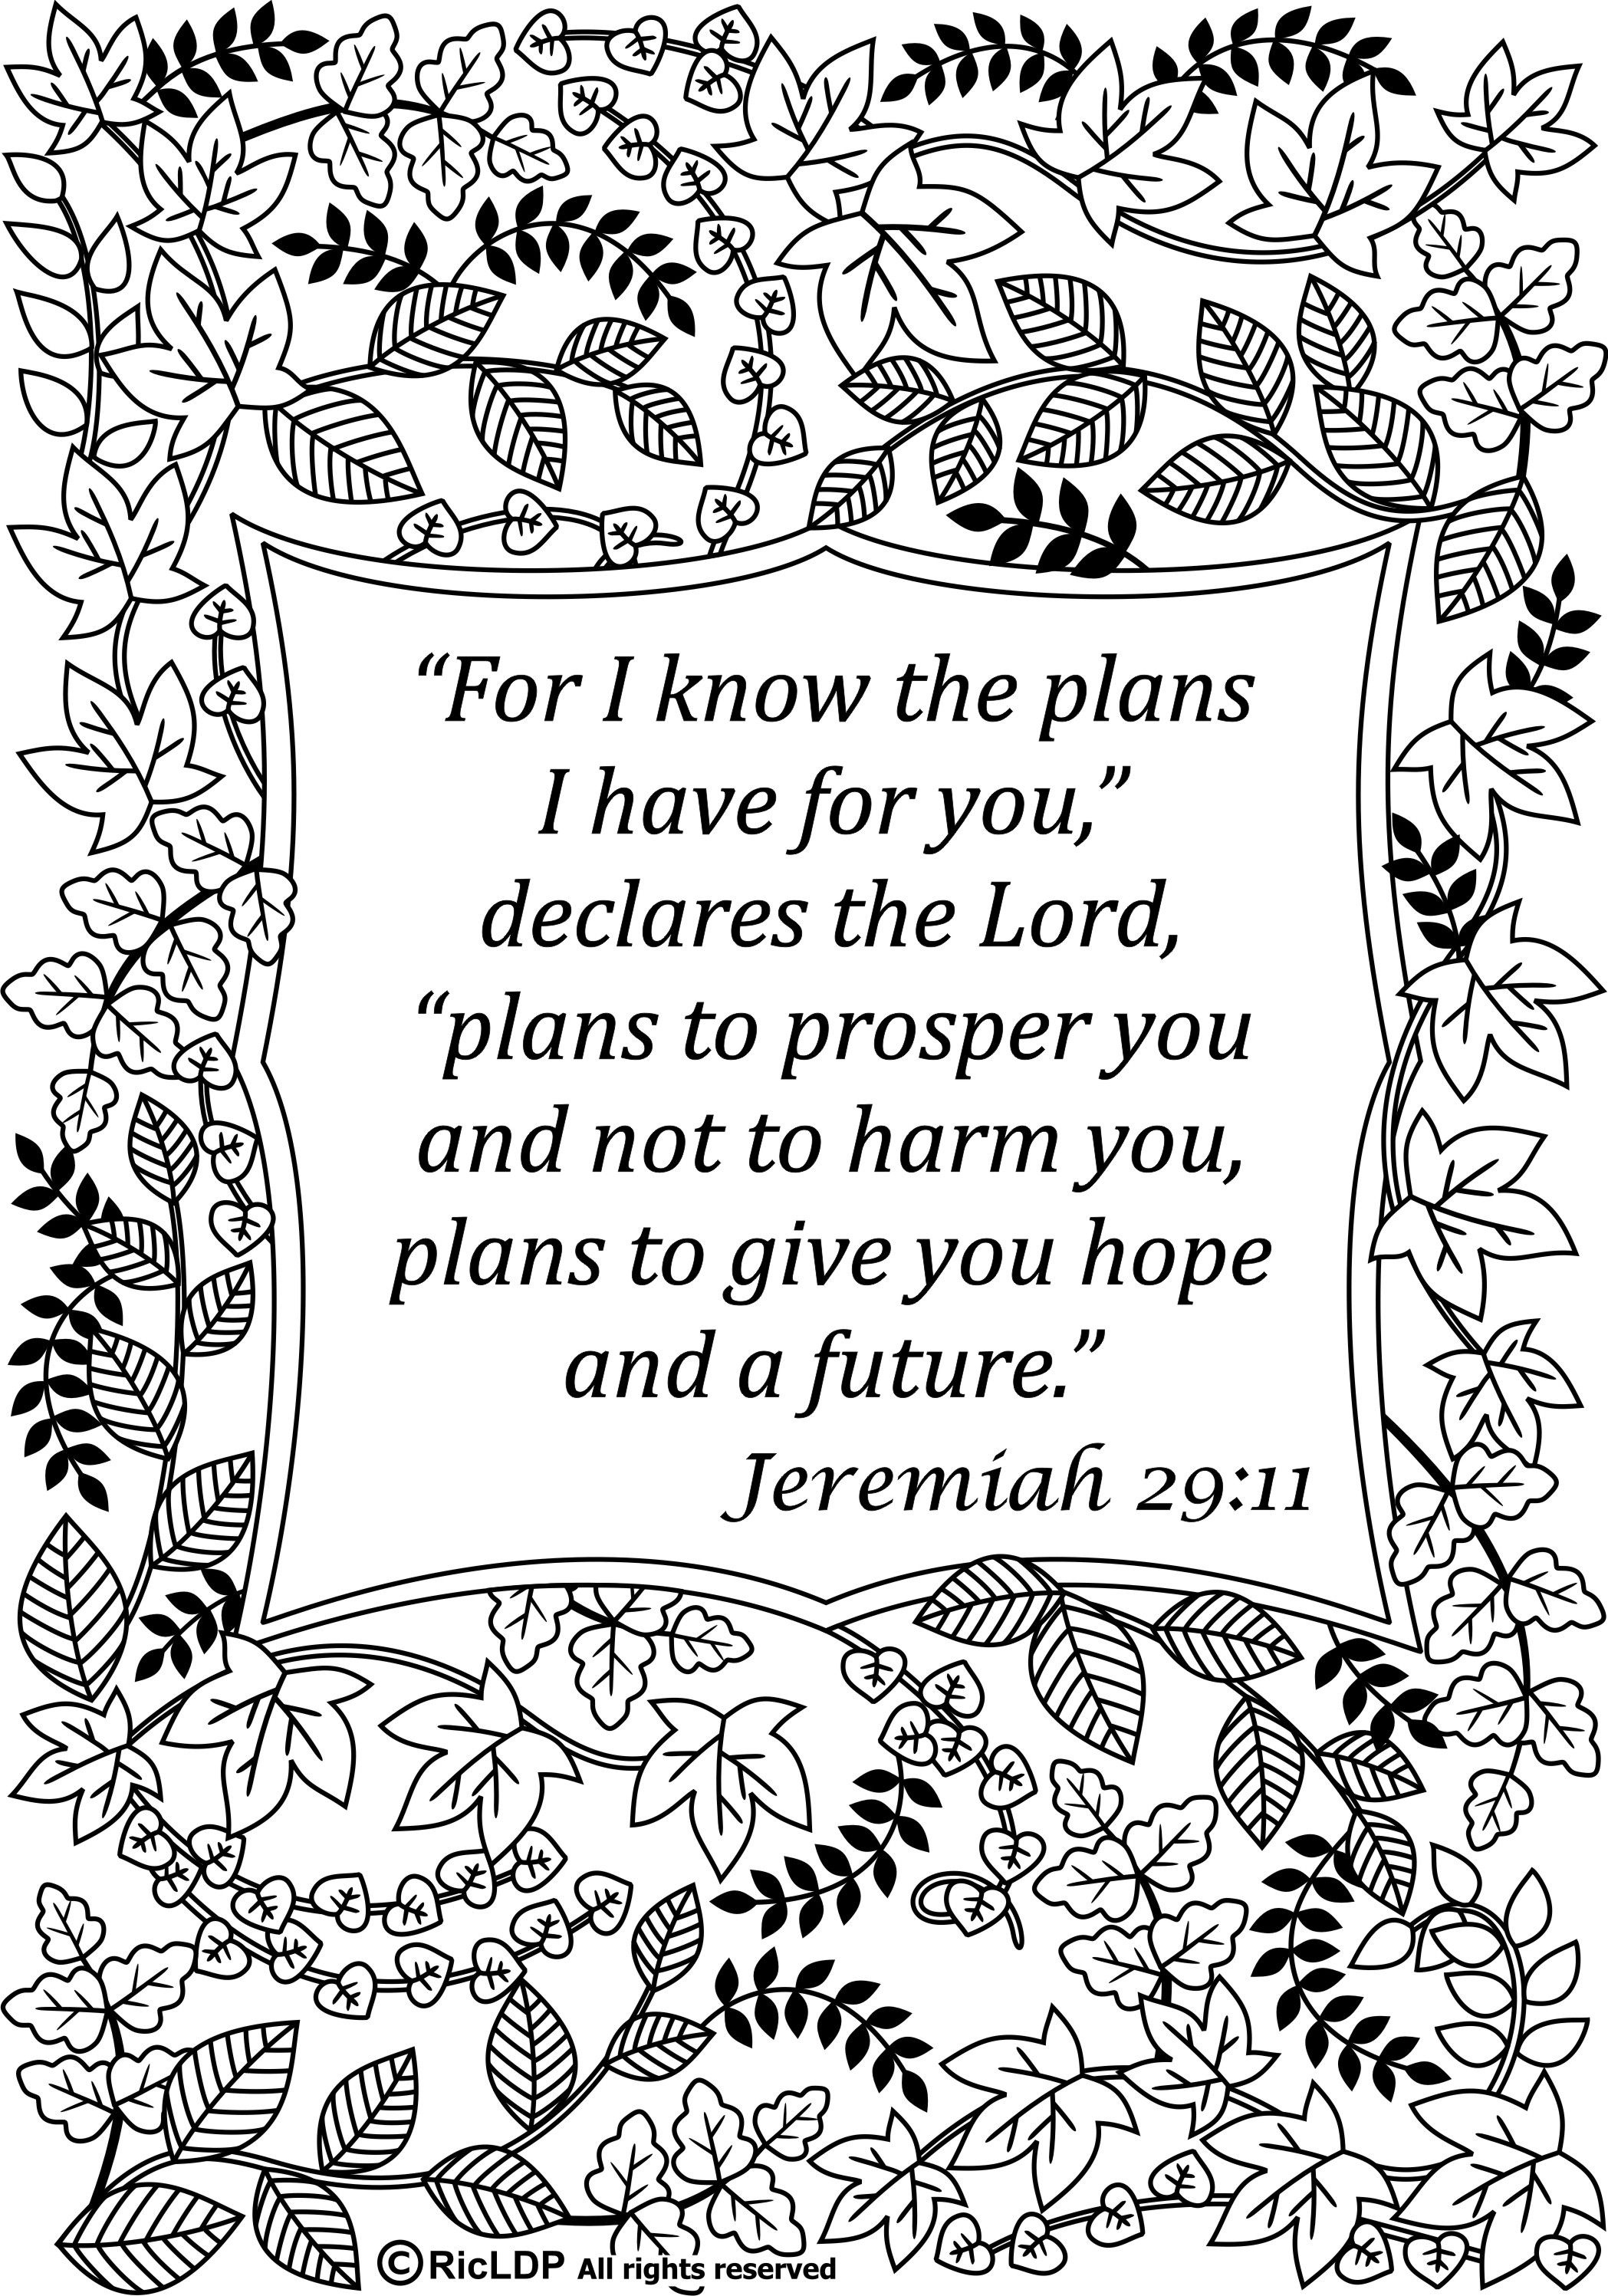 15 Bible Verses Coloring Pages   Coloring Pages With Bible Verses - Free Printable Bible Verses Adults